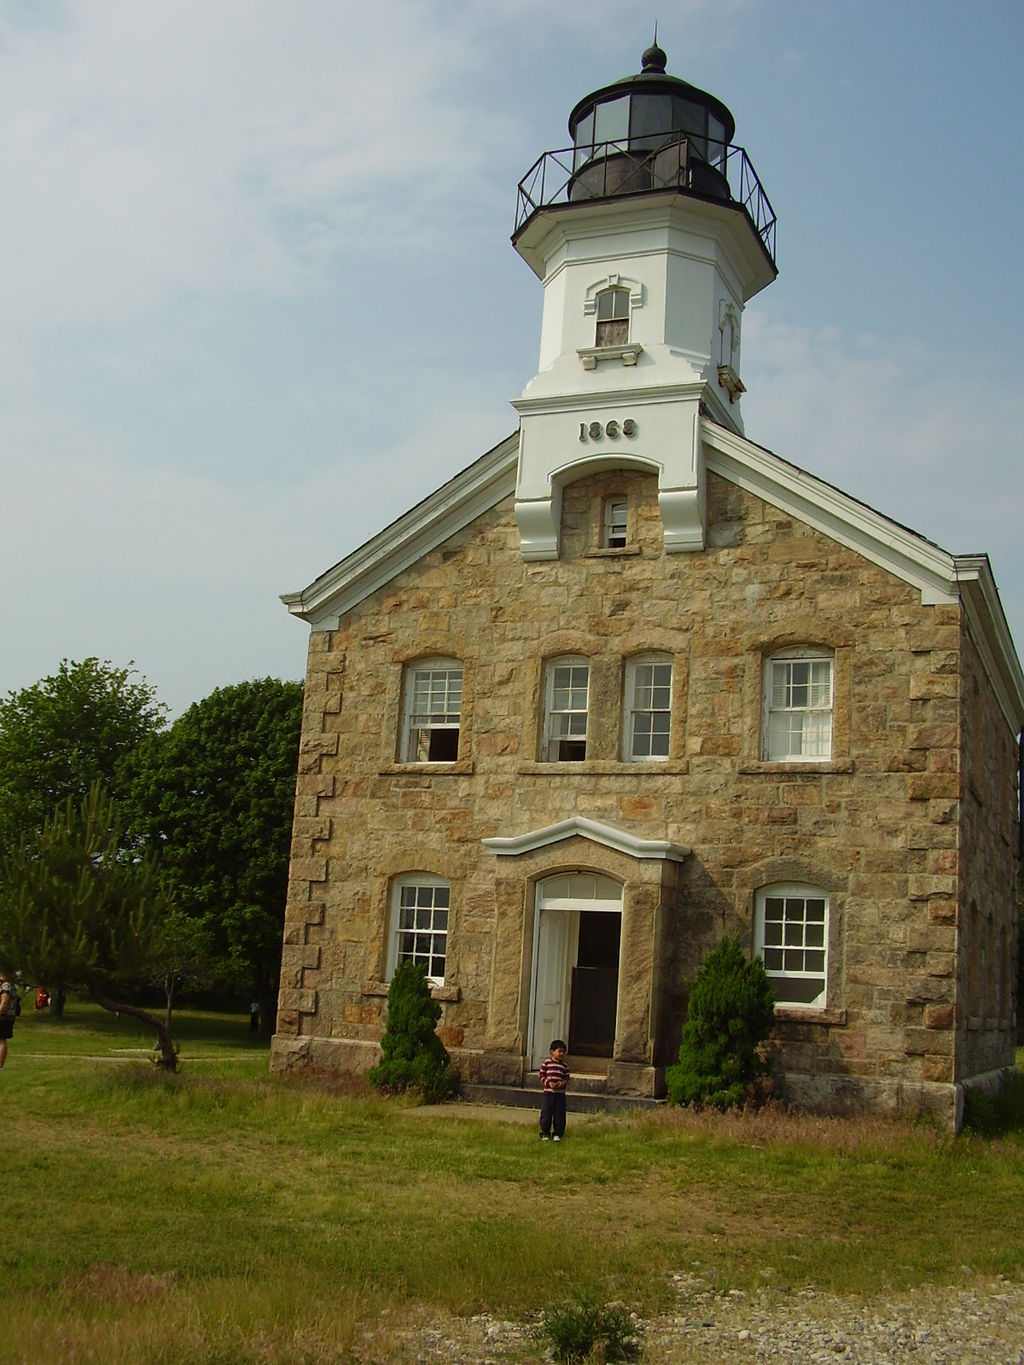 Sheffield Island Light is a museum operated by the Norwalk Seaport Association, which offers ferry rides to the island.